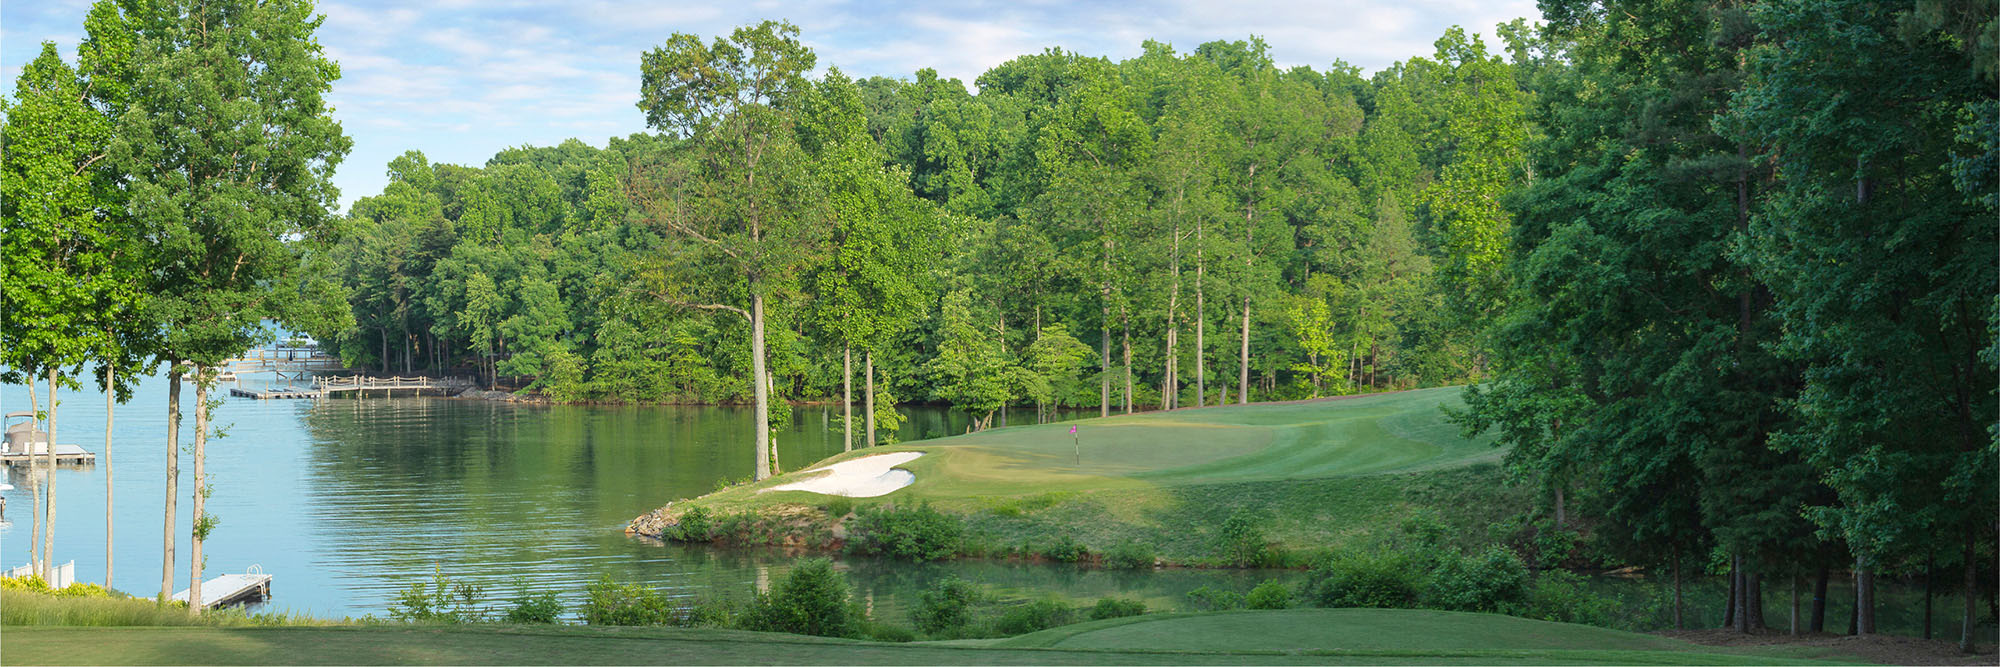 Golf Course Image - Trump National Charlotte No. 7